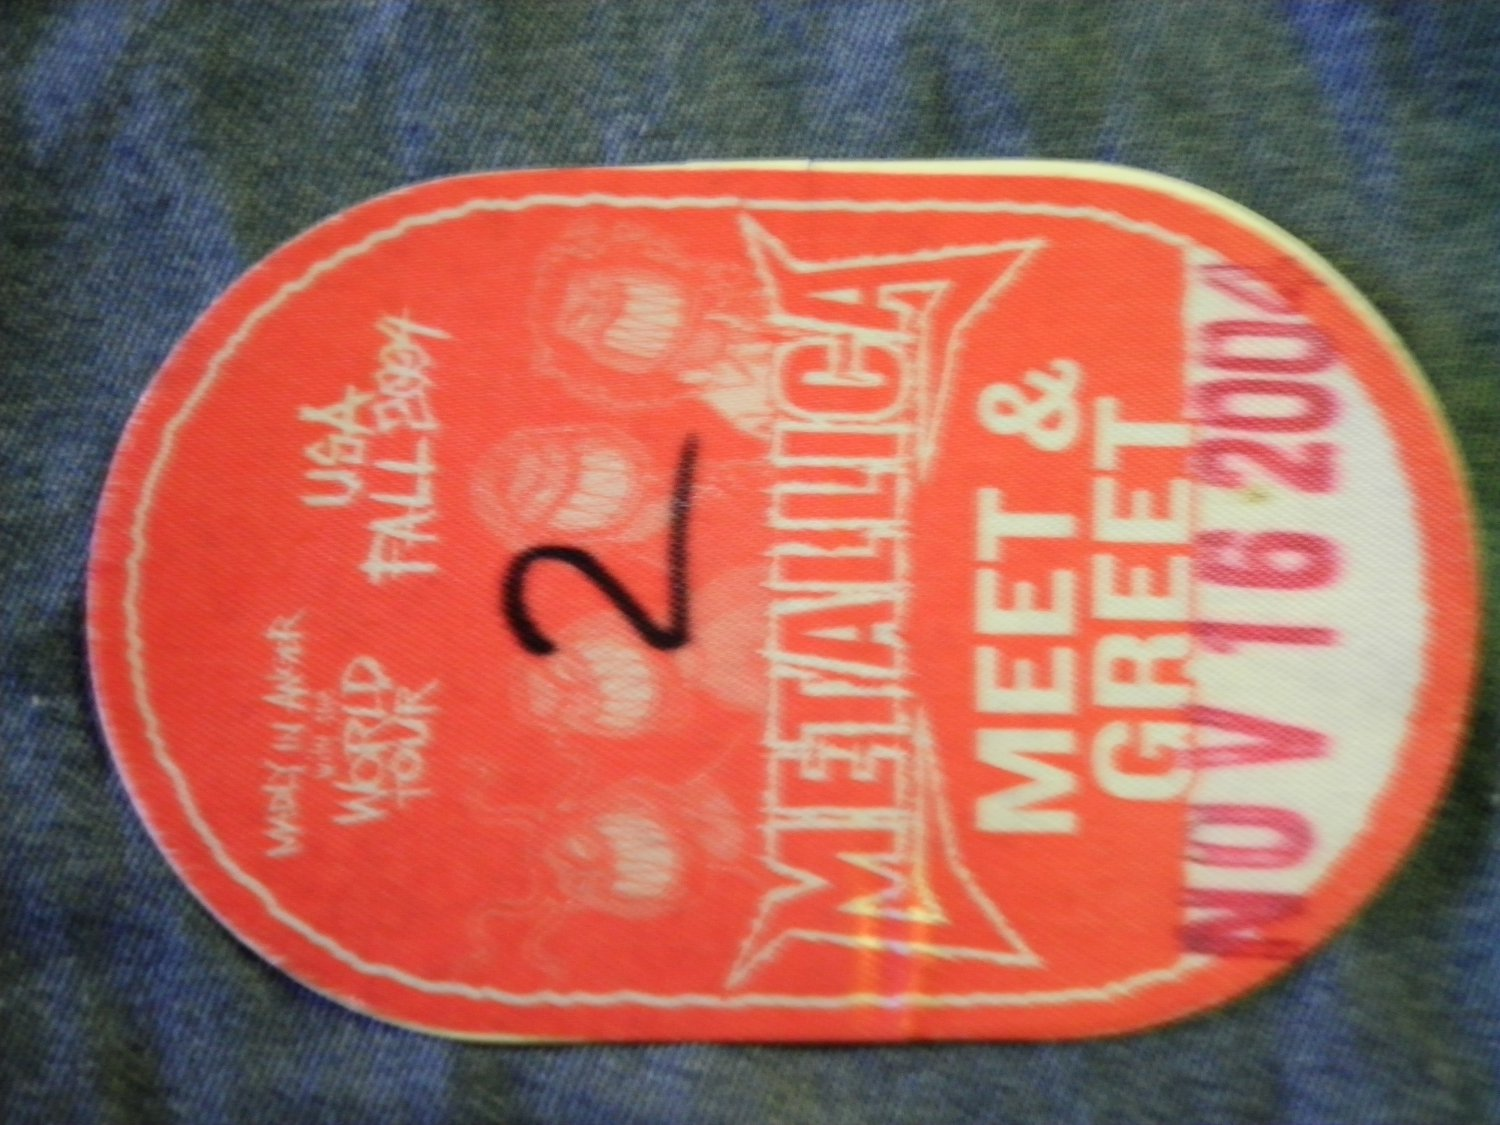 METALLICA BACKSTAGE PASS 2004 madly in anger with the world meet & greet bsp